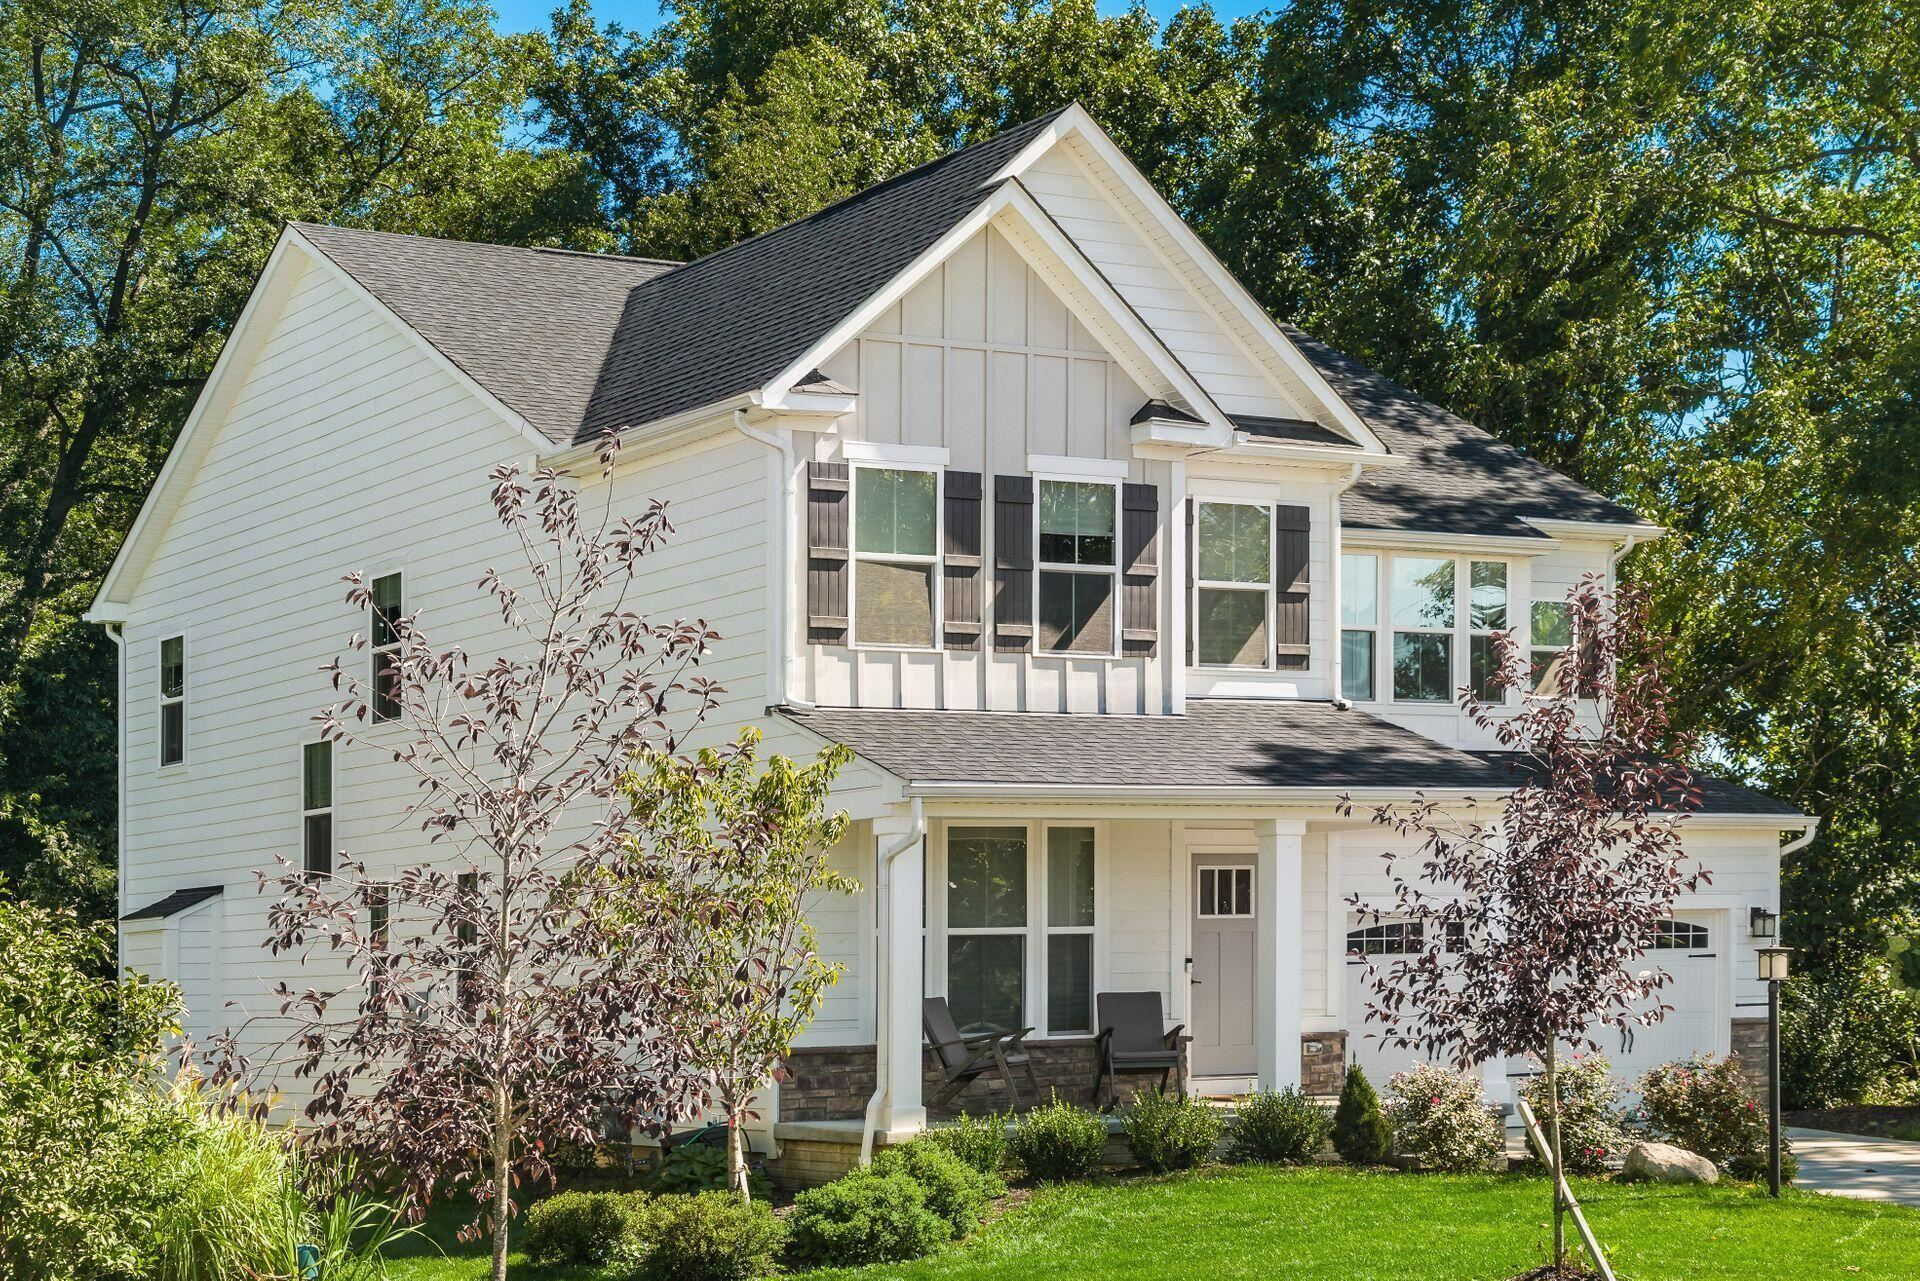 Photo of 859 Cliff View Drive, Galena, OH 43021 (MLS # 221038458)